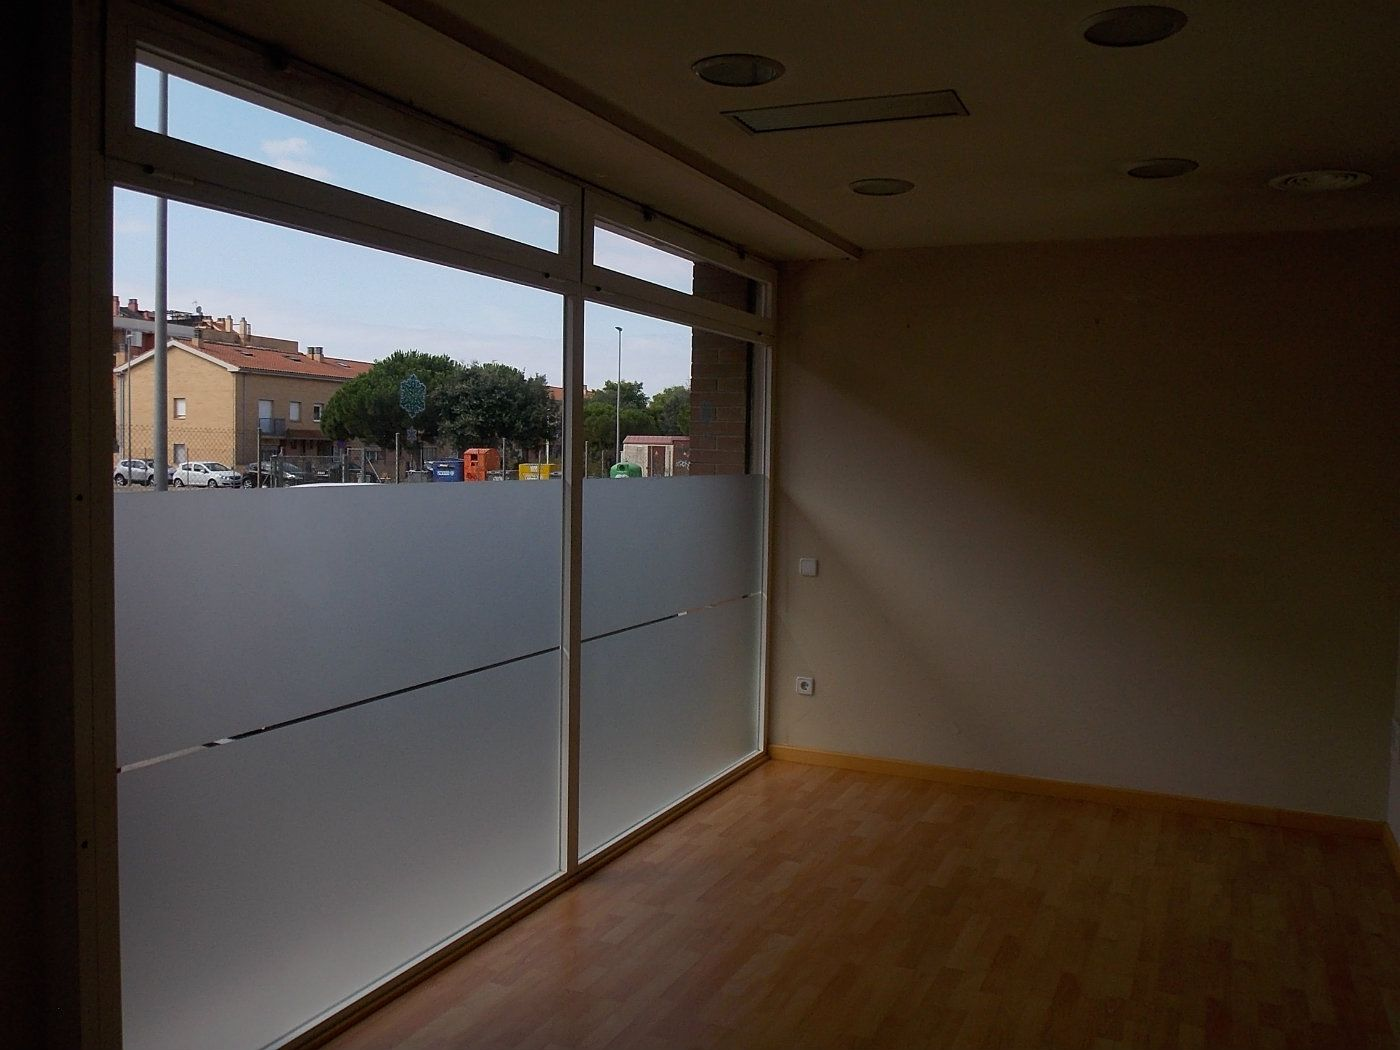 Alquiler Local Comercial en Malgrat de Mar. Magnific local 100m2